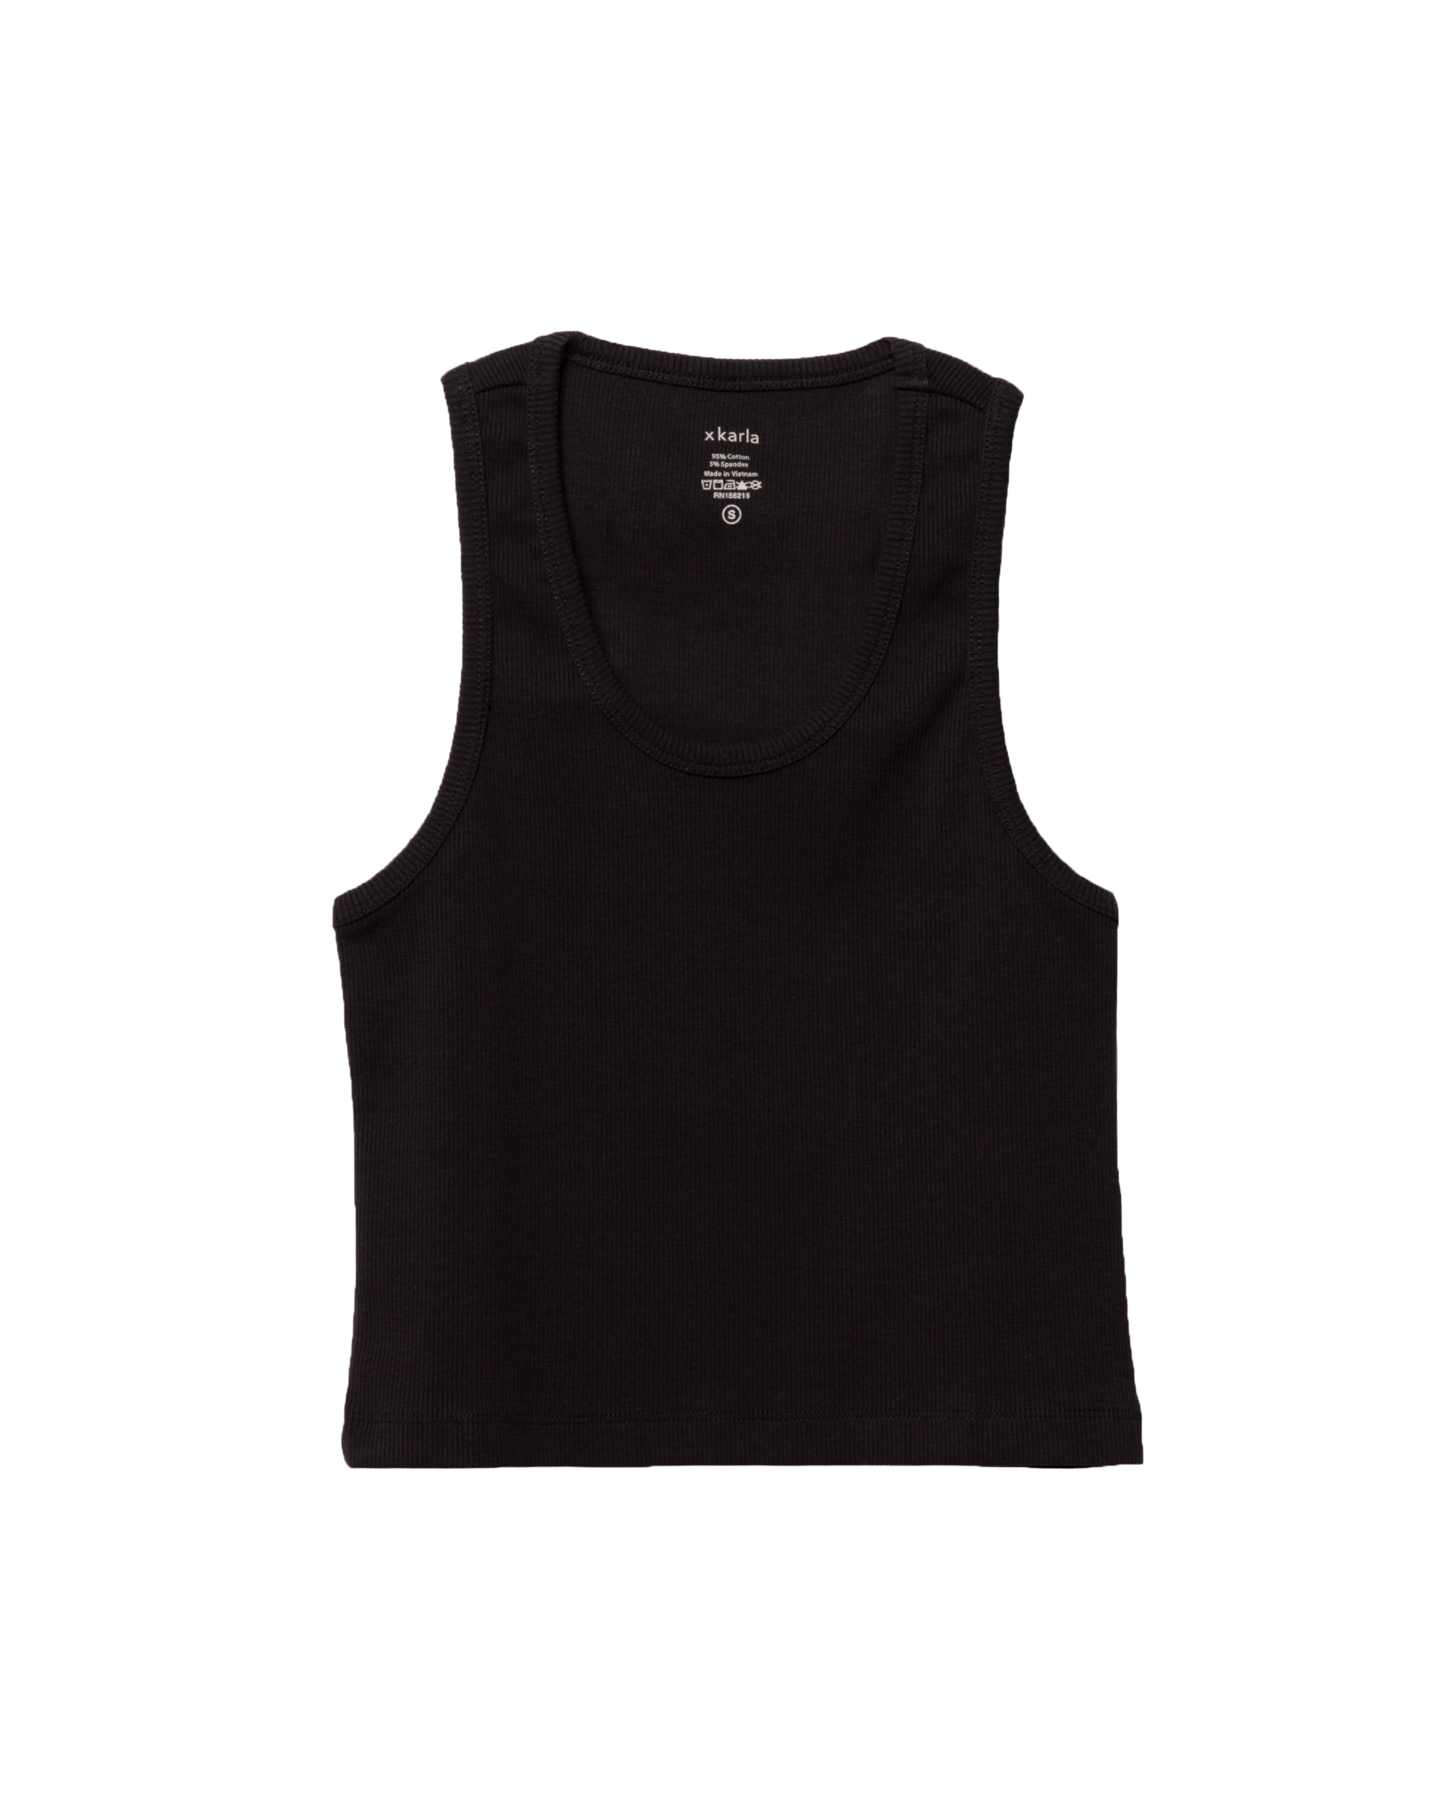 THE CROP TANK IN BLACK by Hanes X Karla, available on xkarla.com for $54 Hailey Baldwin Top Exact Product